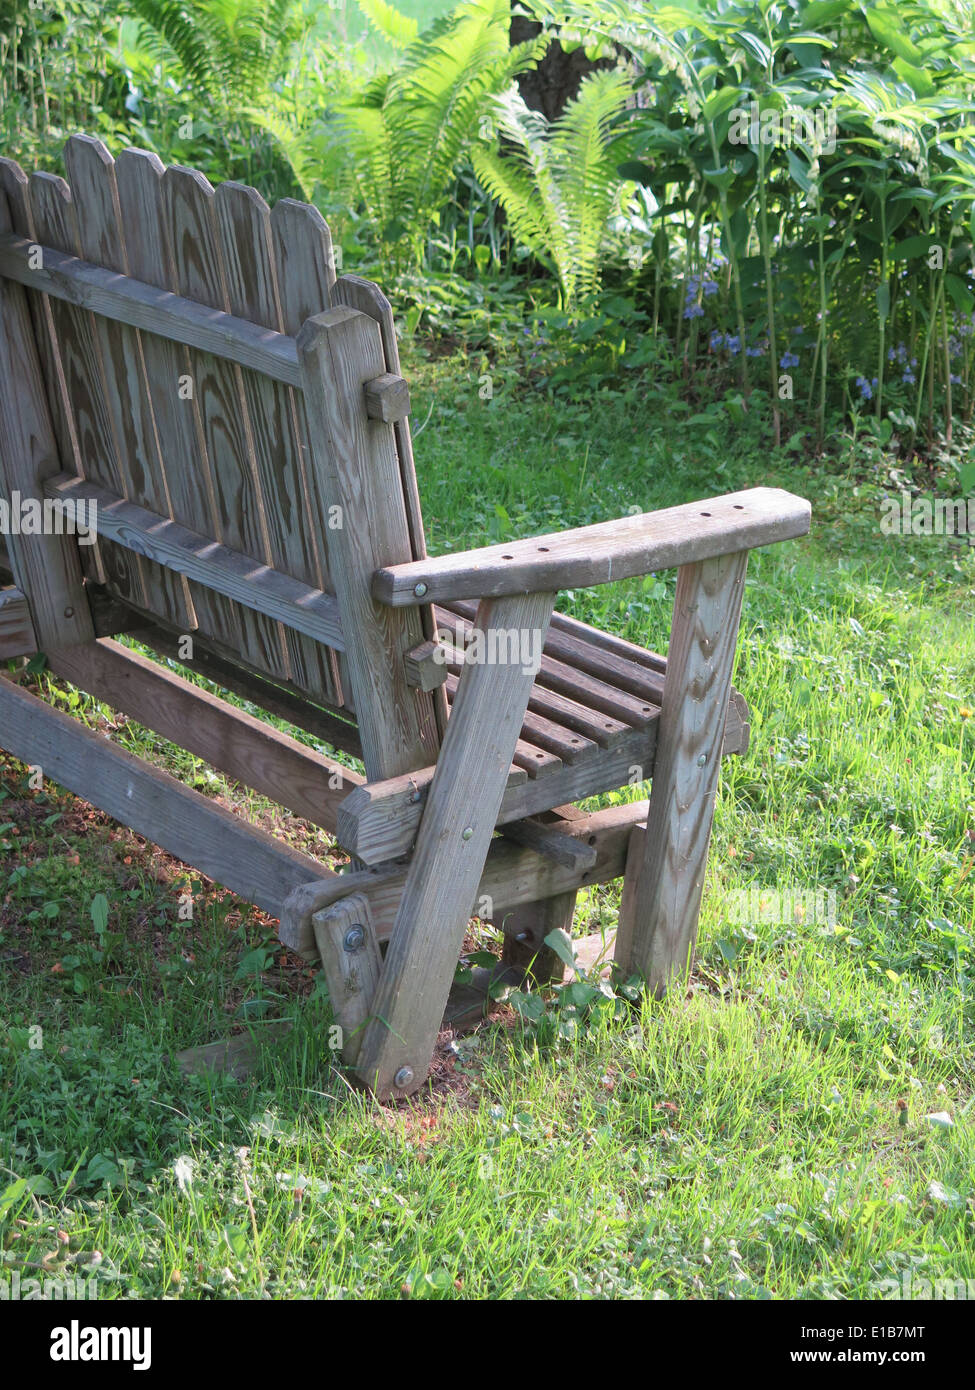 Outstanding Half Of A Wooden Swing Bench Is Visible In A Lush Garden Squirreltailoven Fun Painted Chair Ideas Images Squirreltailovenorg